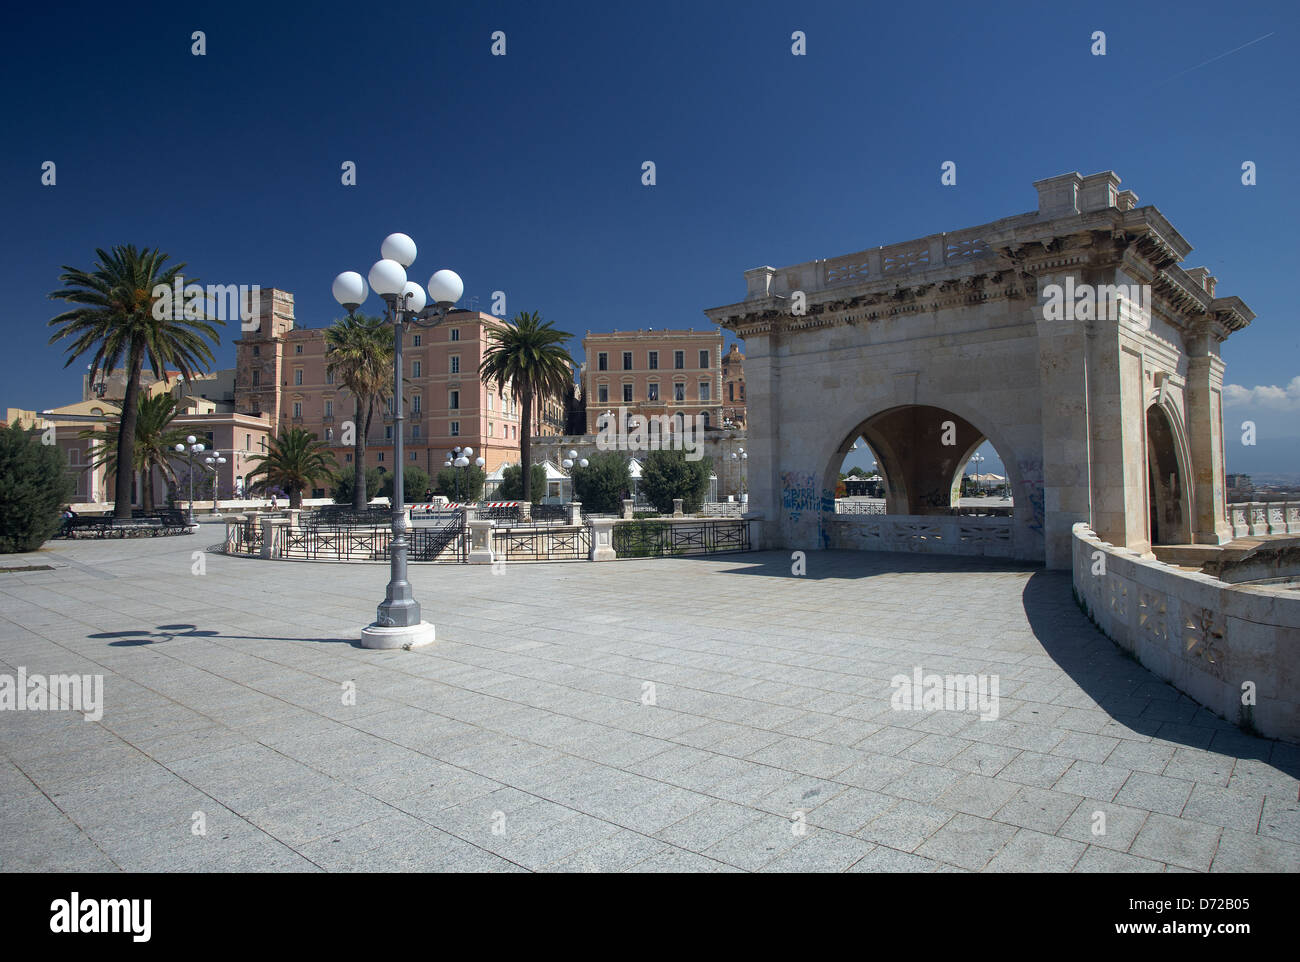 Palaces Of Cagliari Stock Photos Palaces Of Cagliari Stock